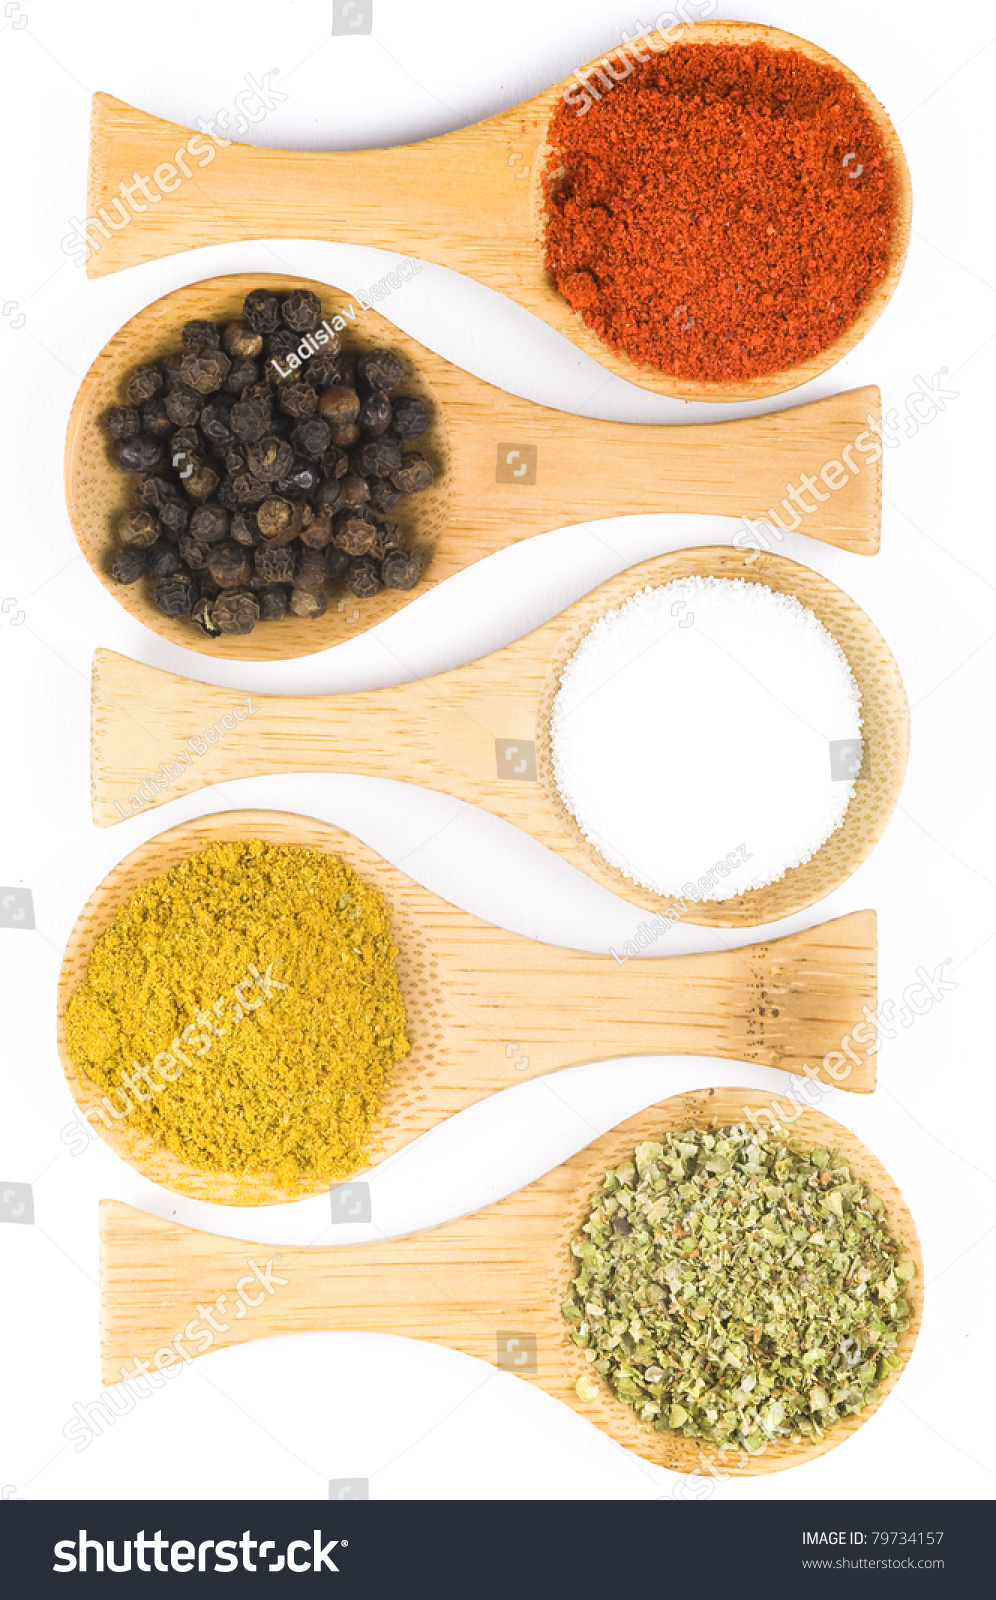 Colorful Spoons: Bamboo Spoons With Colorful Spices Stock Photo 79734157